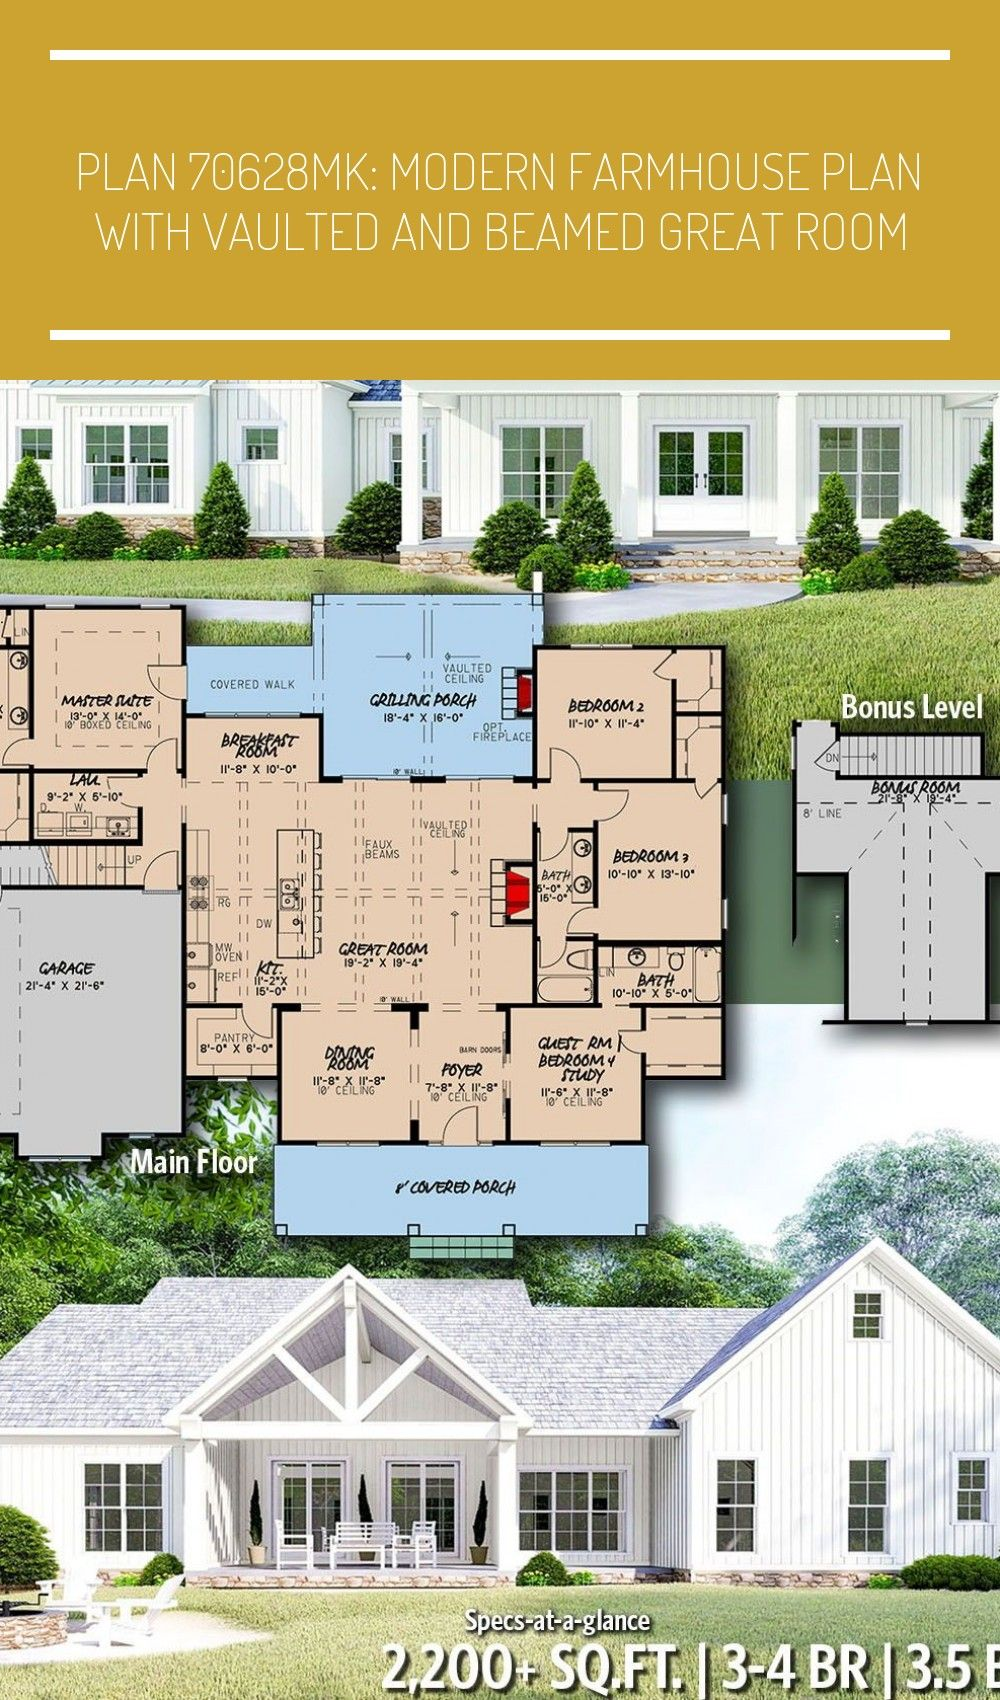 Architectural Designs Modern Farmhouse Plan 70628MK gives you 3-4 bedrooms, 3.5 baths and 2,200+ sq. ft. Ready when you are! Where do YOU want to build? #70628MK #modern #farmhouse #country #adhouseplans #architecturaldesigns #houseplans #architecture #newhome #newconstruction #newhouse #homeplans #architecture #home #homesweethome #modern farmhouse bathroom trash can Plan 70628MK: Modern Farmhouse Plan with Vaulted and Beamed Great Room